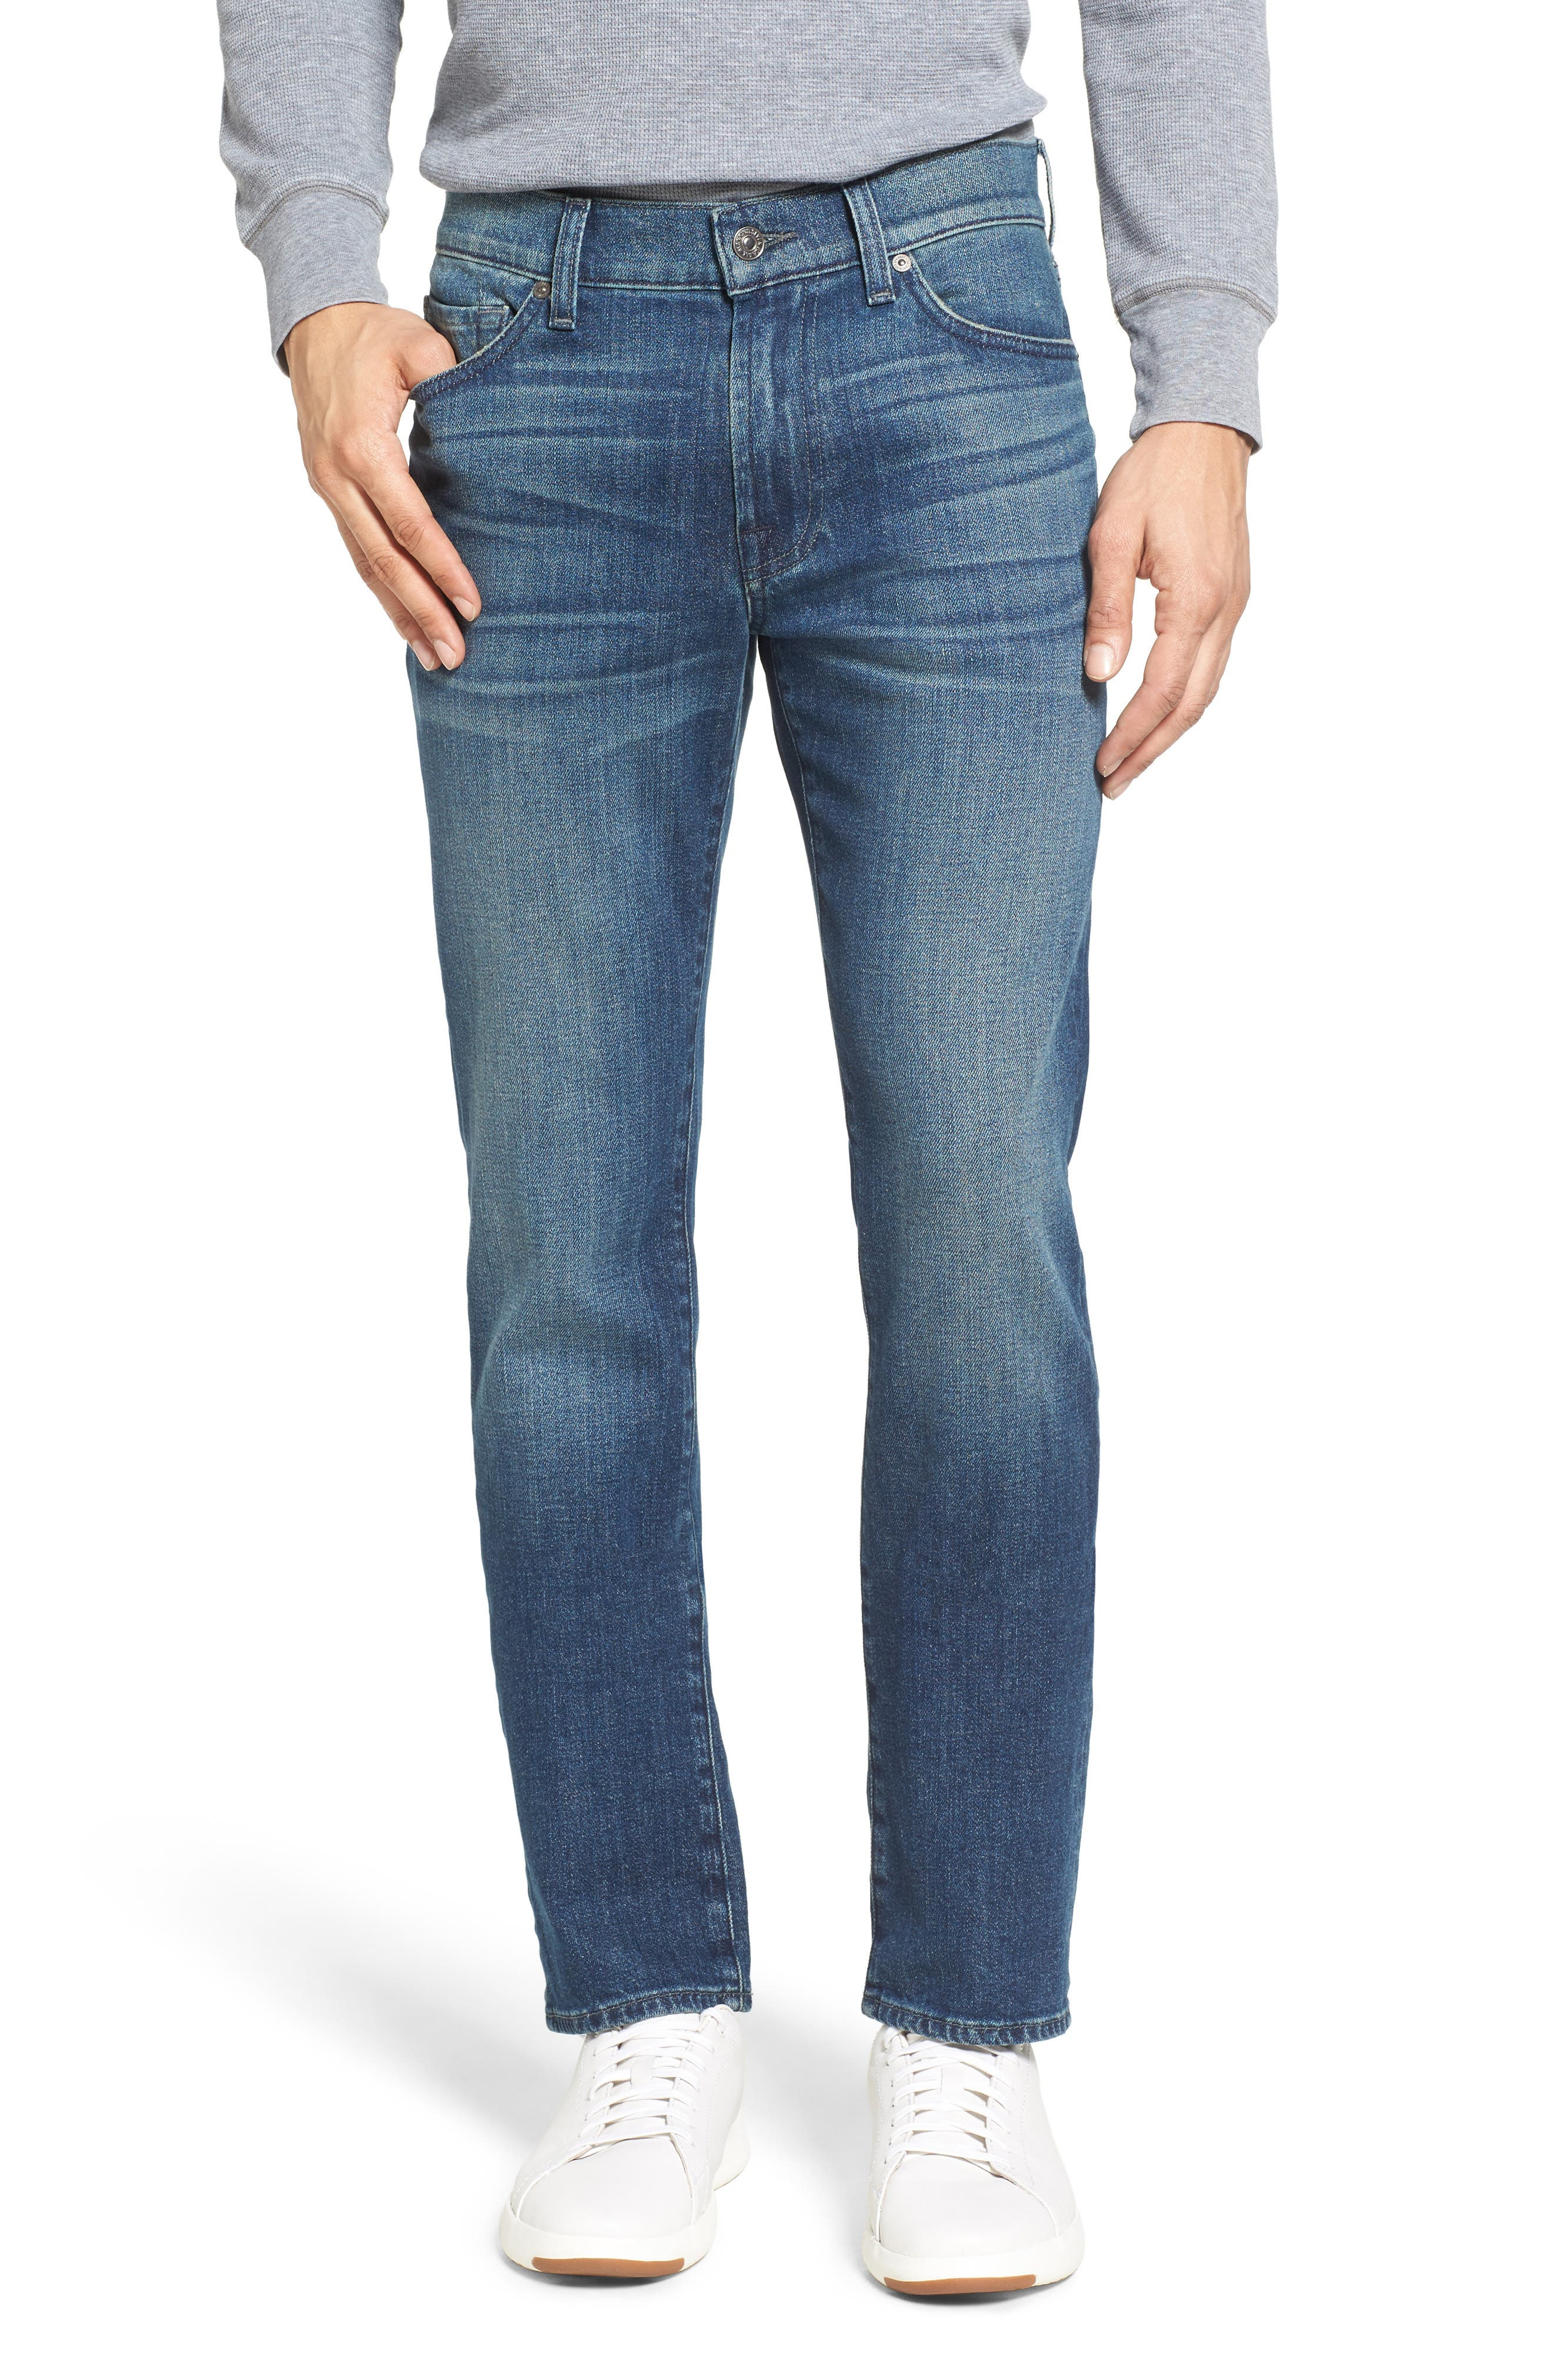 7 For All Mankind Slimmy Slim Fit Jeans,                             Main thumbnail 1, color,                             406